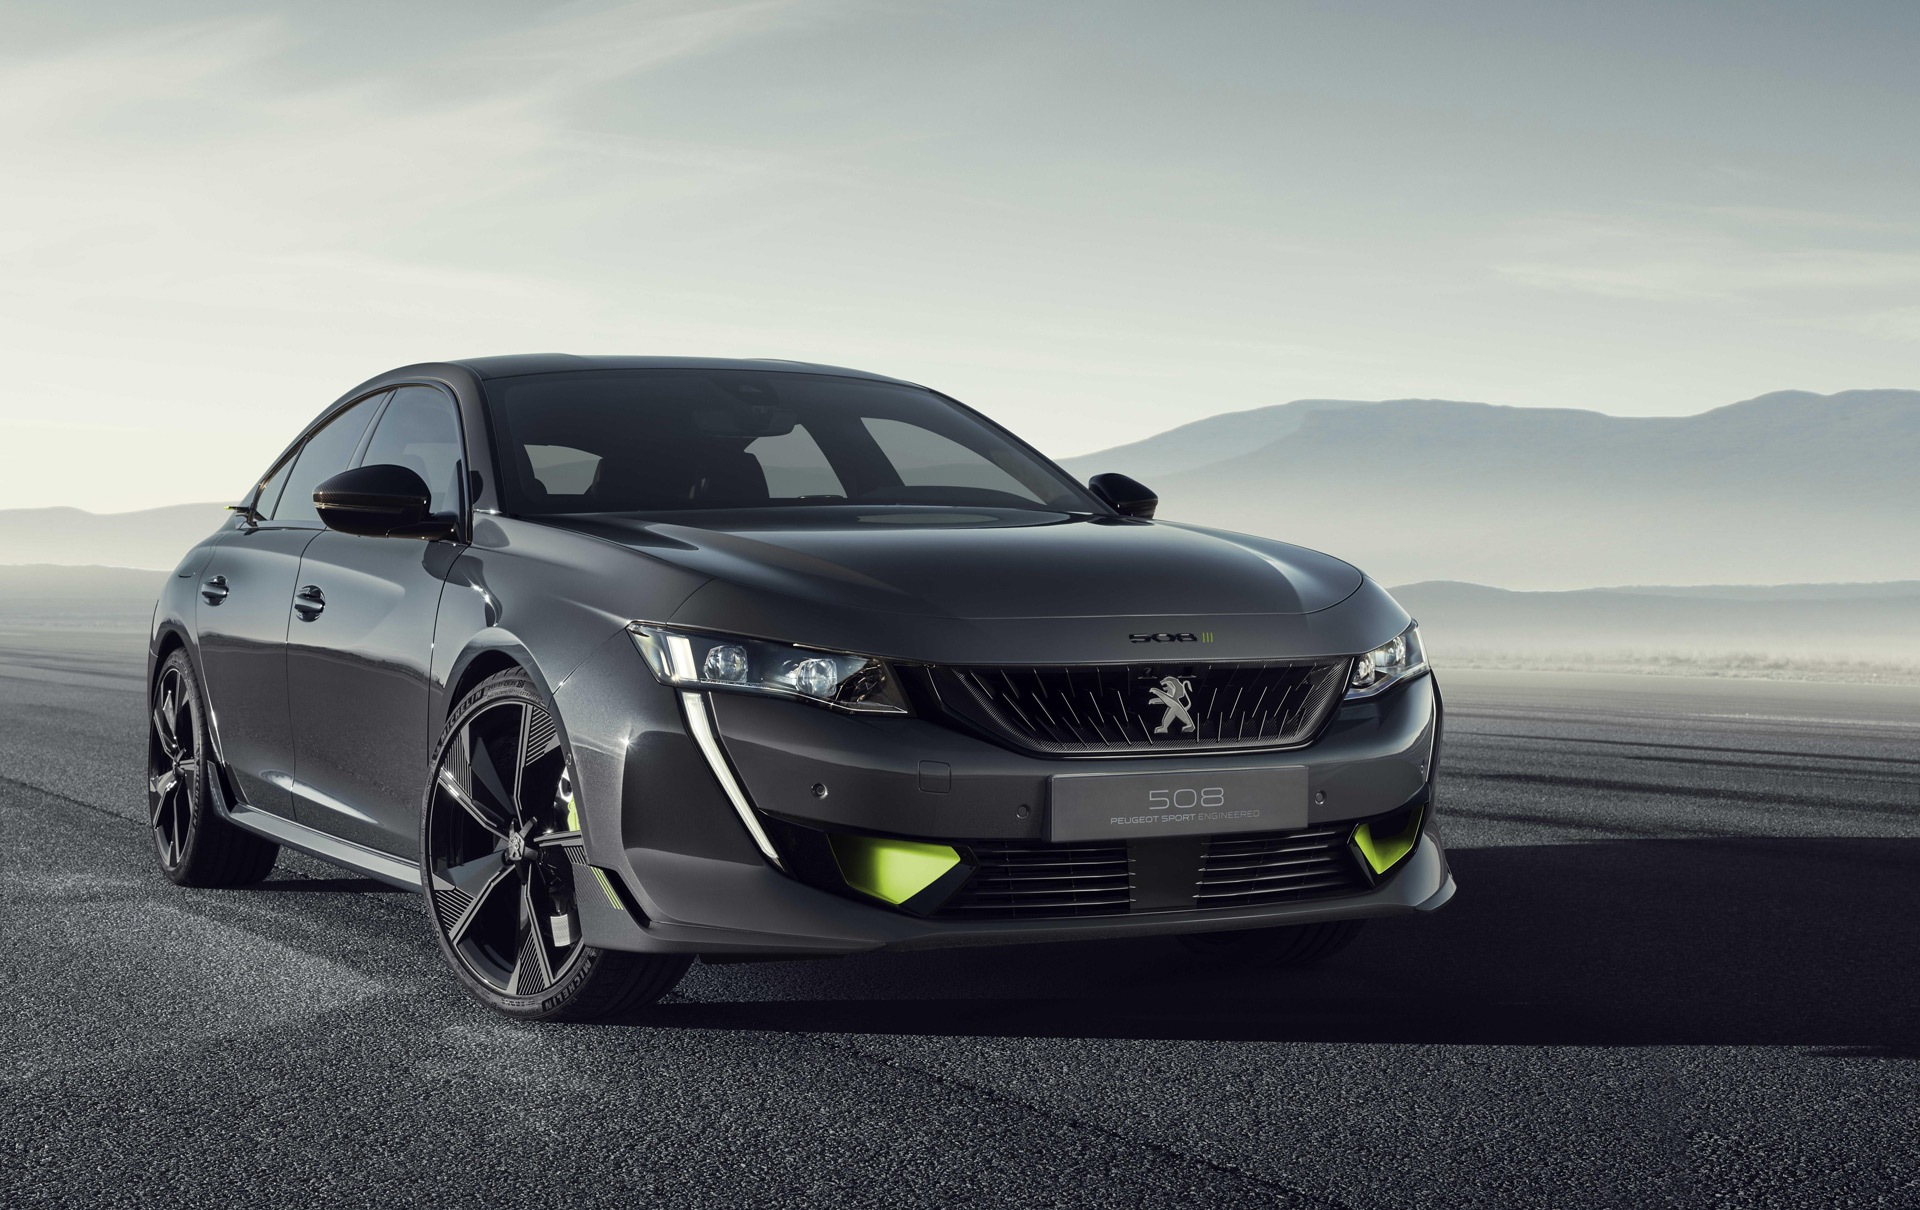 peugeot previews performance hybrid lineup with 508 sport sedan concept. Black Bedroom Furniture Sets. Home Design Ideas